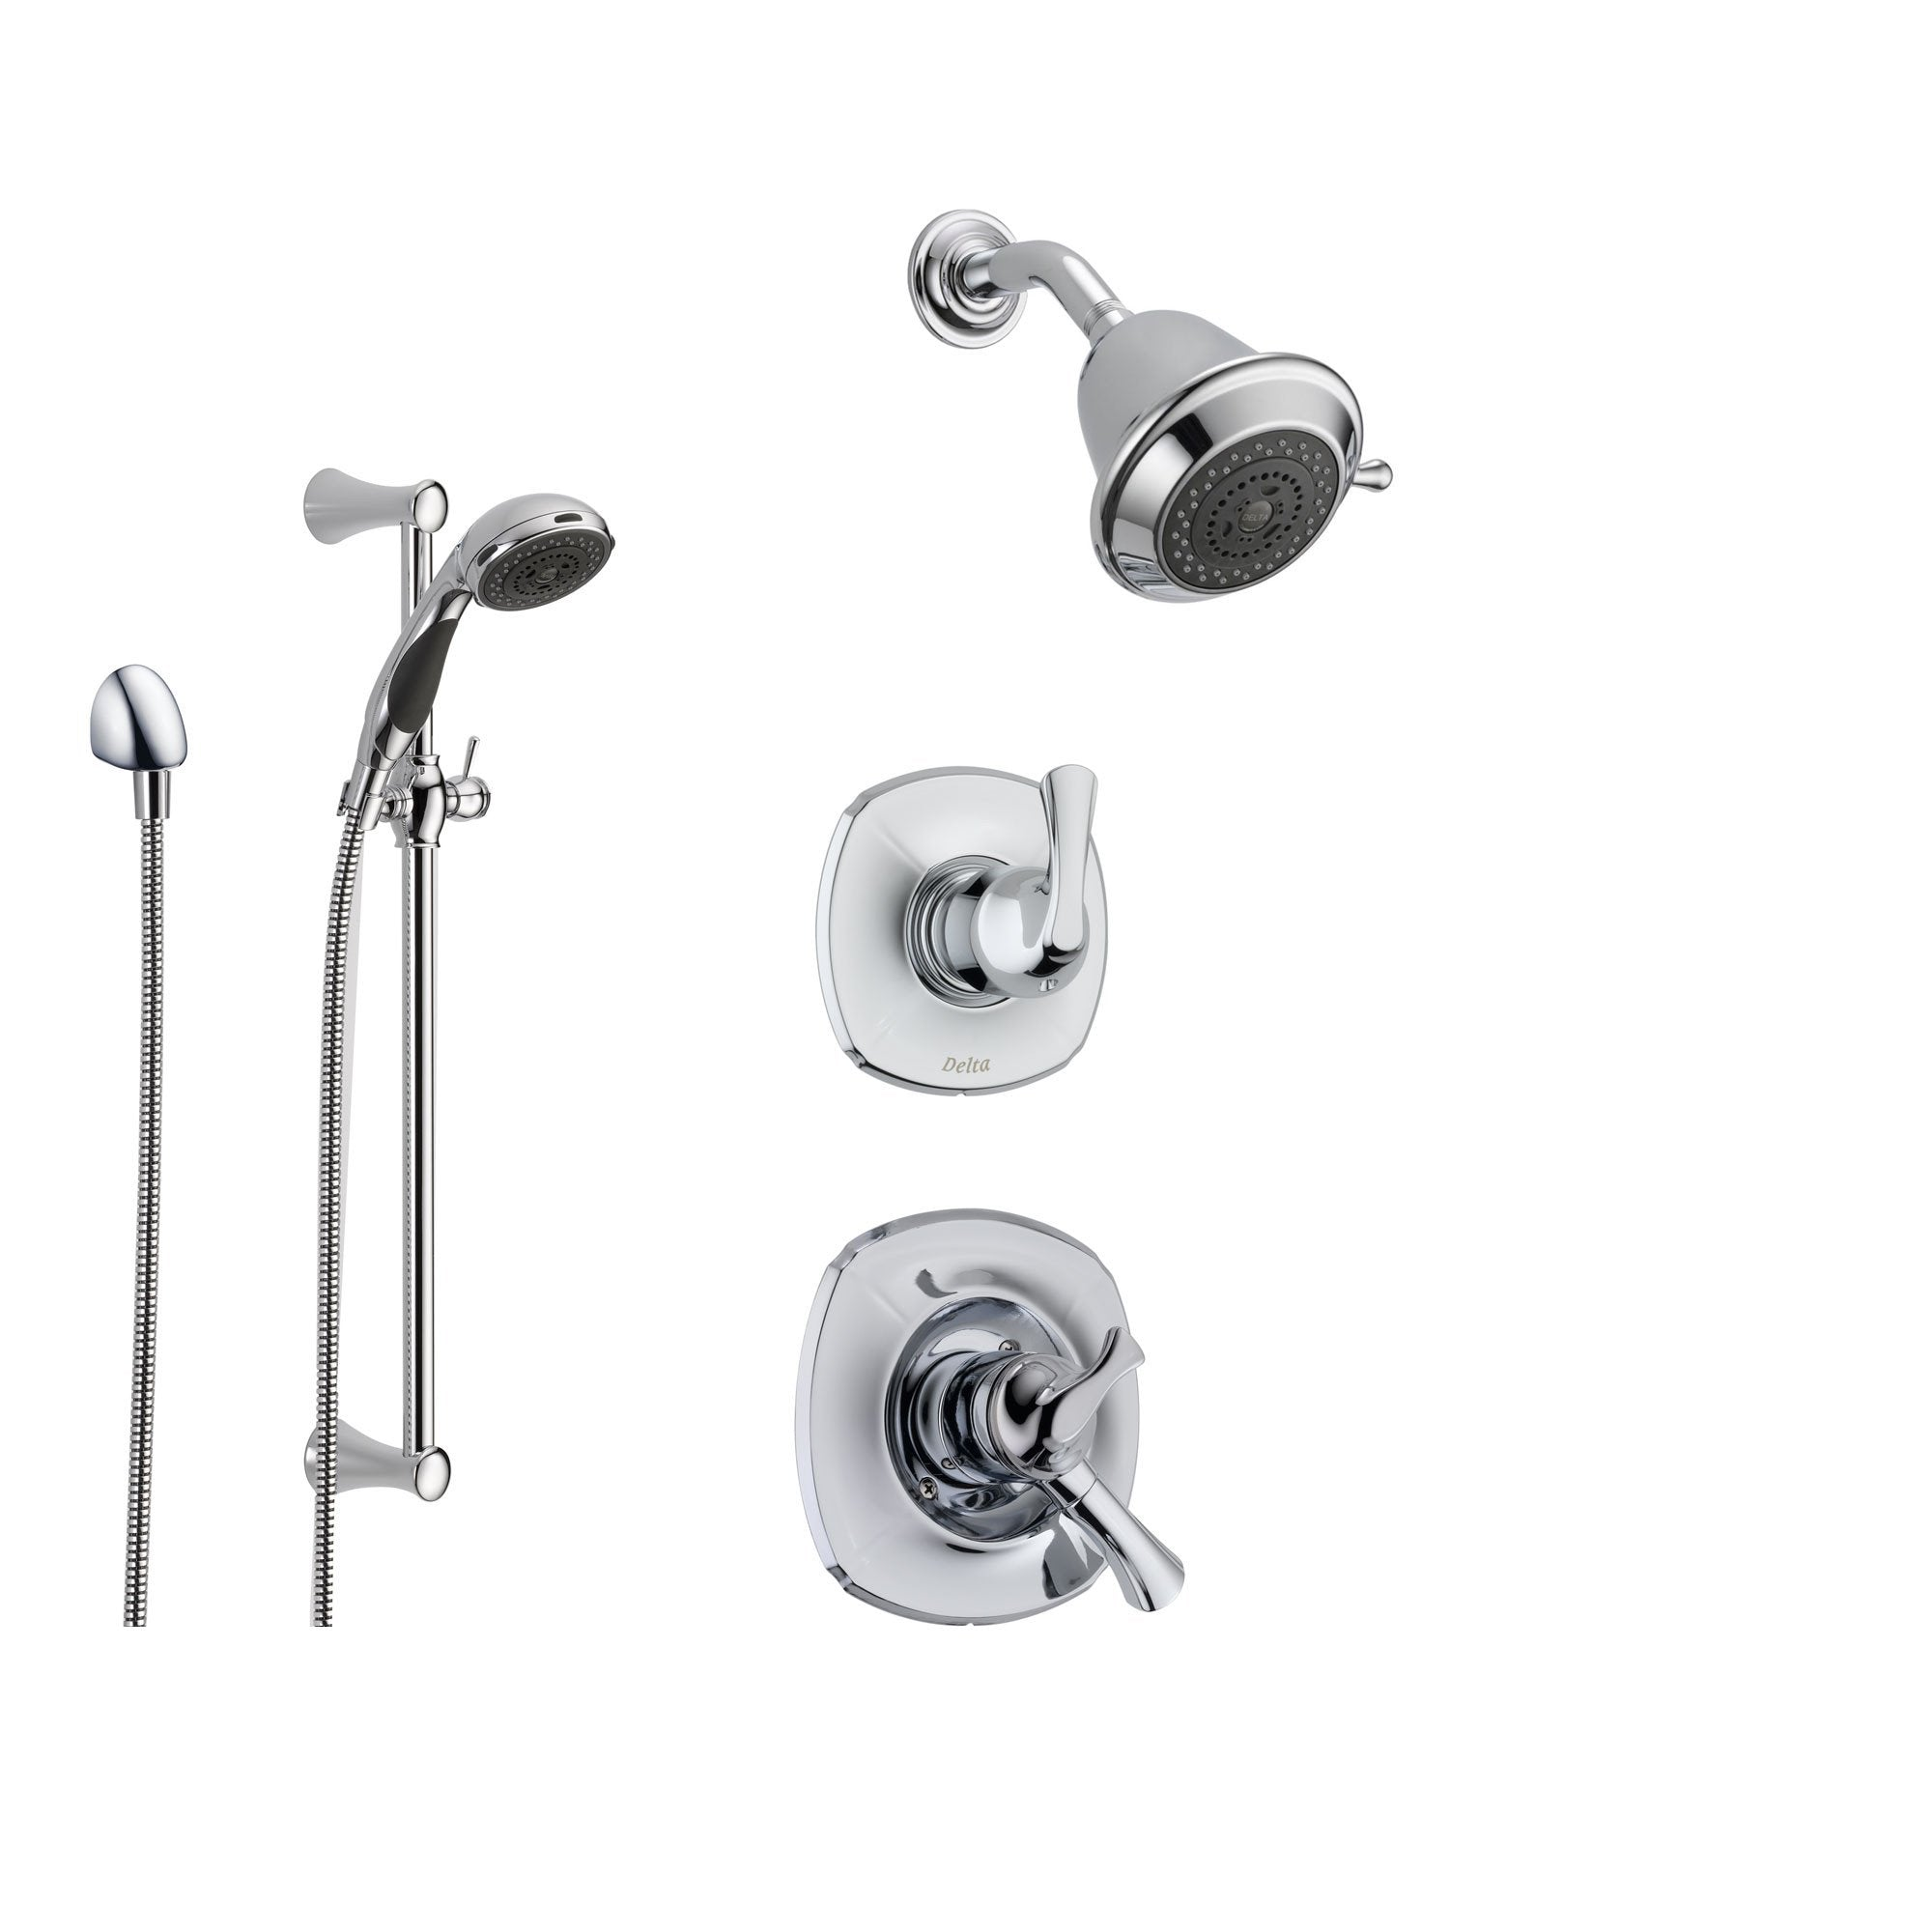 Delta Addison Chrome Shower System with Dual Control Shower Handle, 3-setting Diverter, Showerhead, and Handheld Shower SS179284